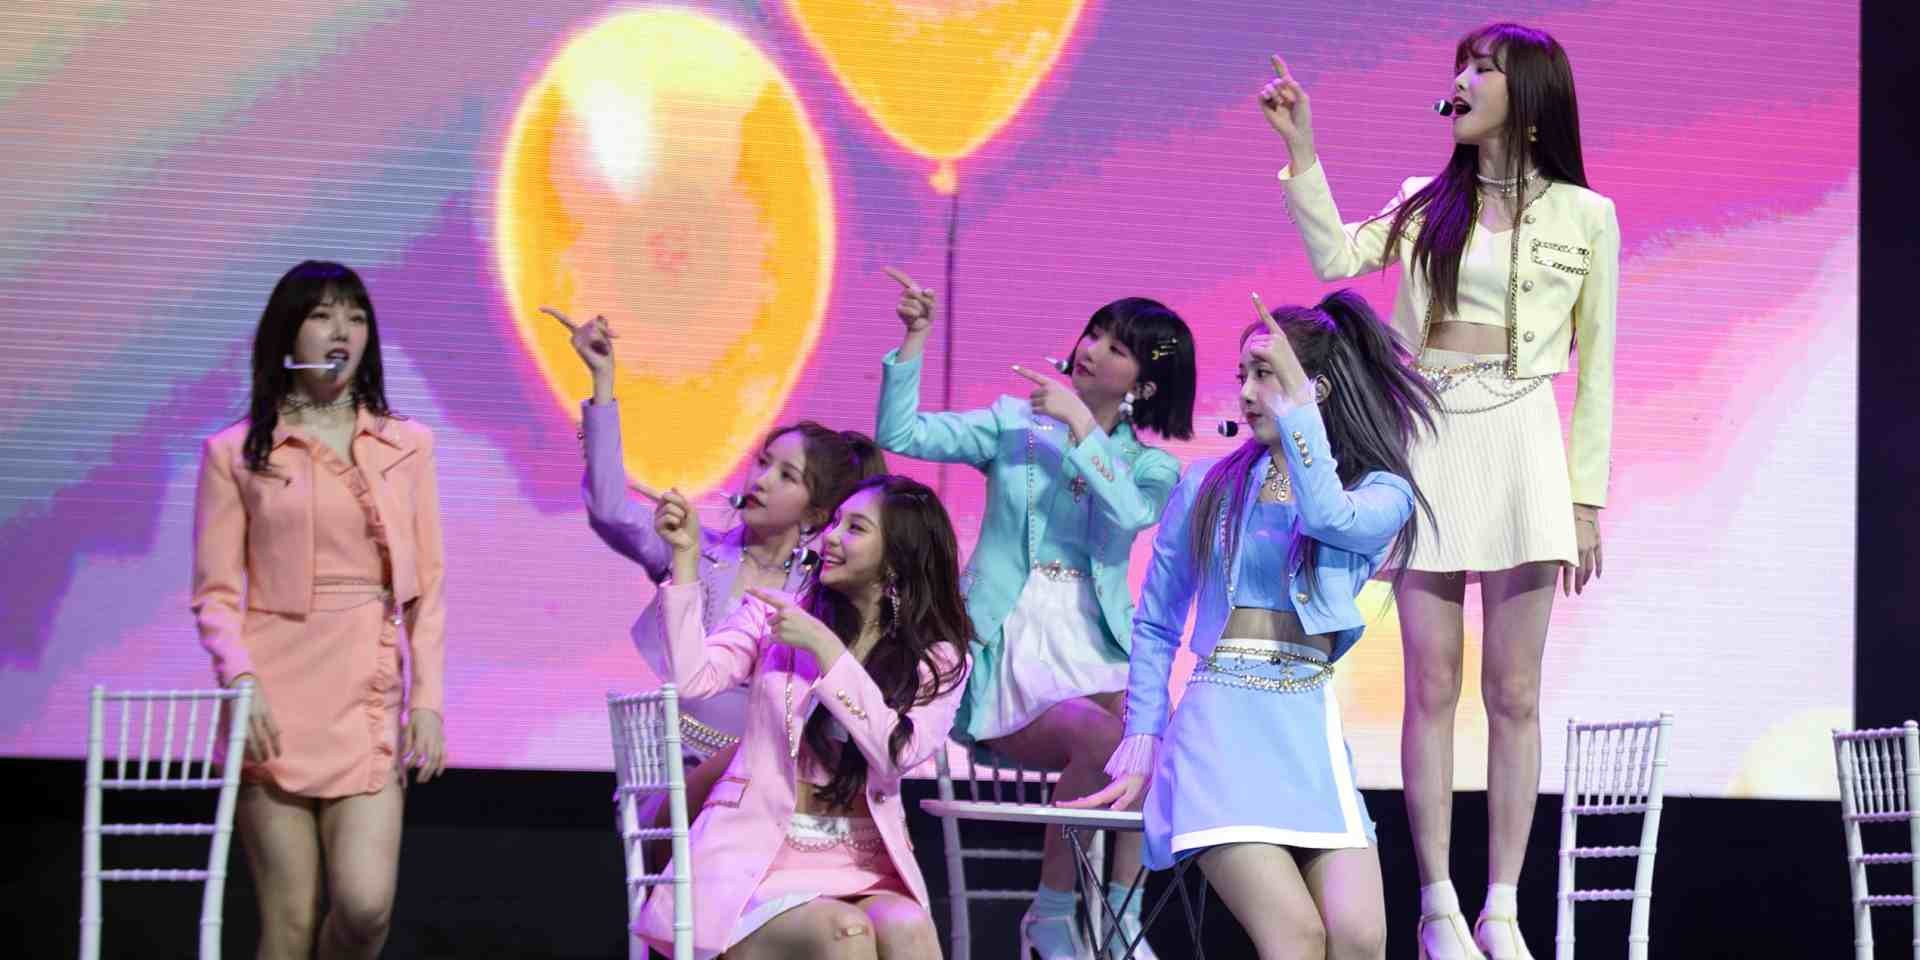 GFriend shows why they are one of the top girl groups in K-pop at Singapore show – gig report